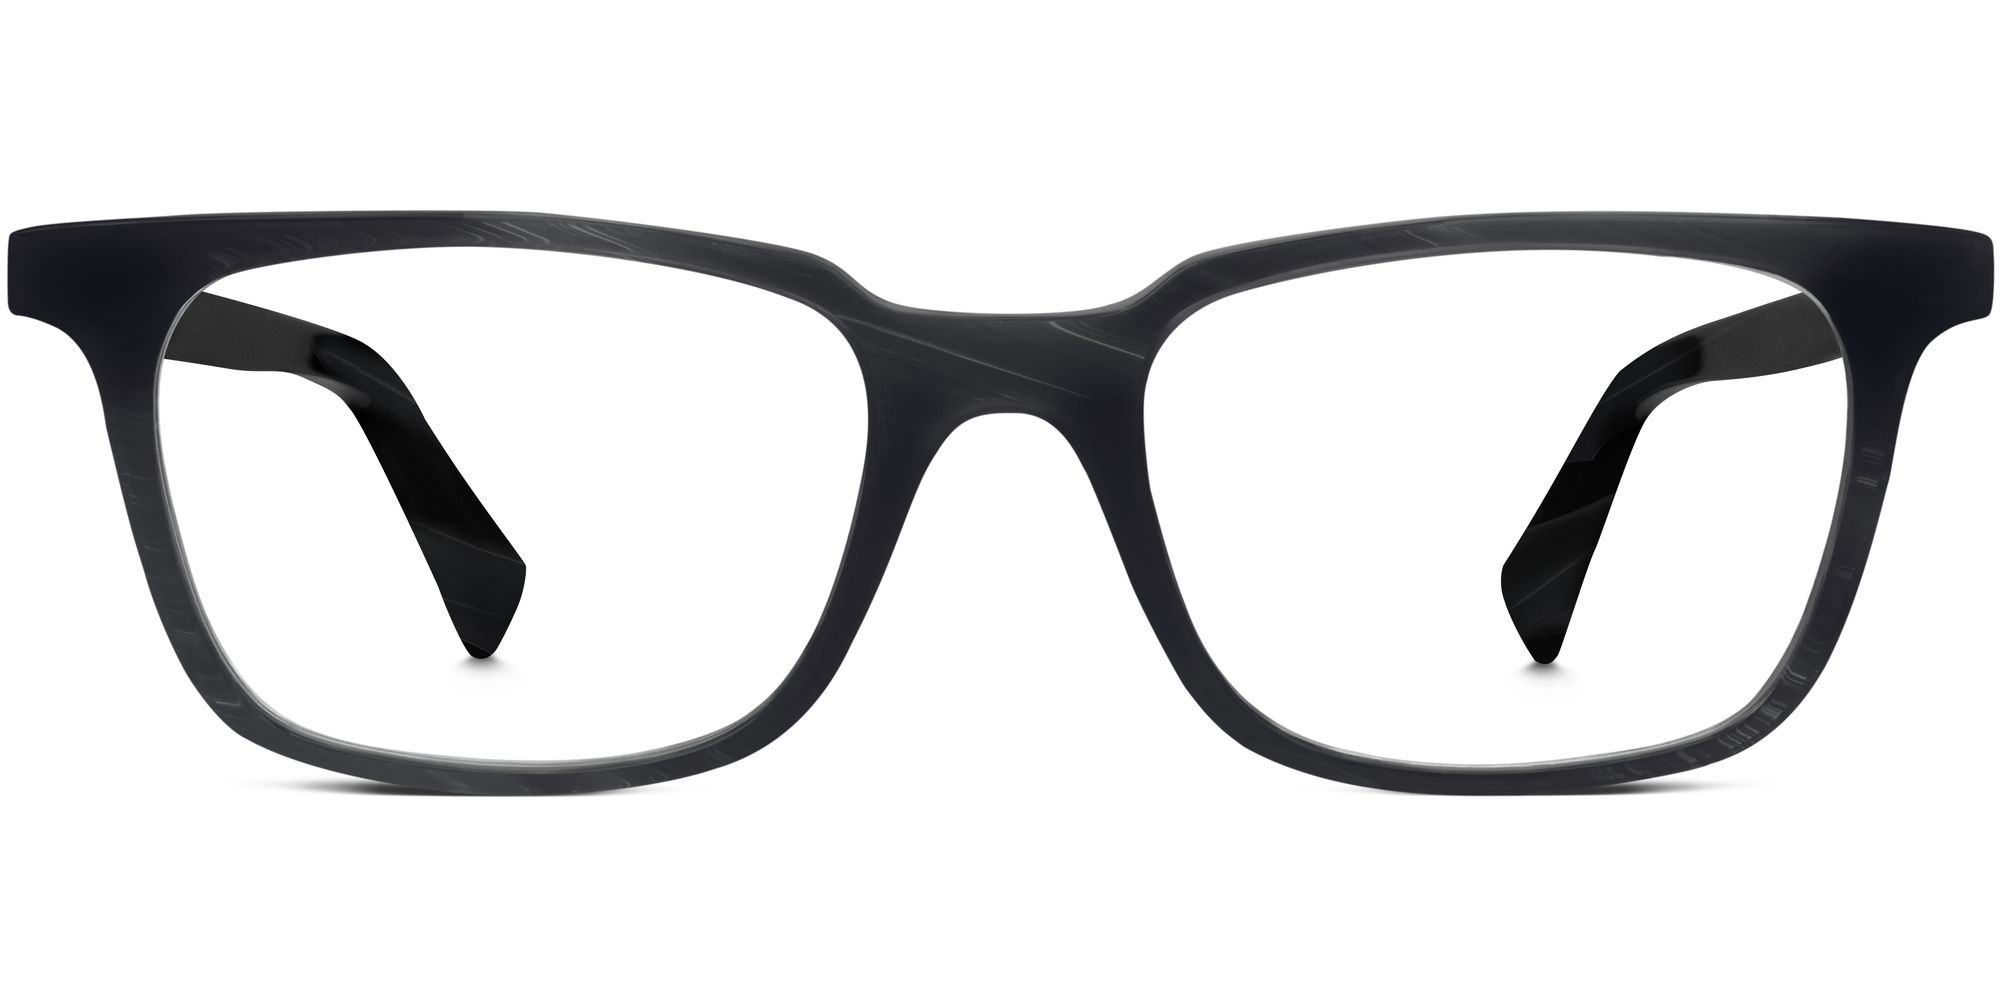 Warby Parker Pearls - Buy Best Warby Parker Pearls from Fashion ...